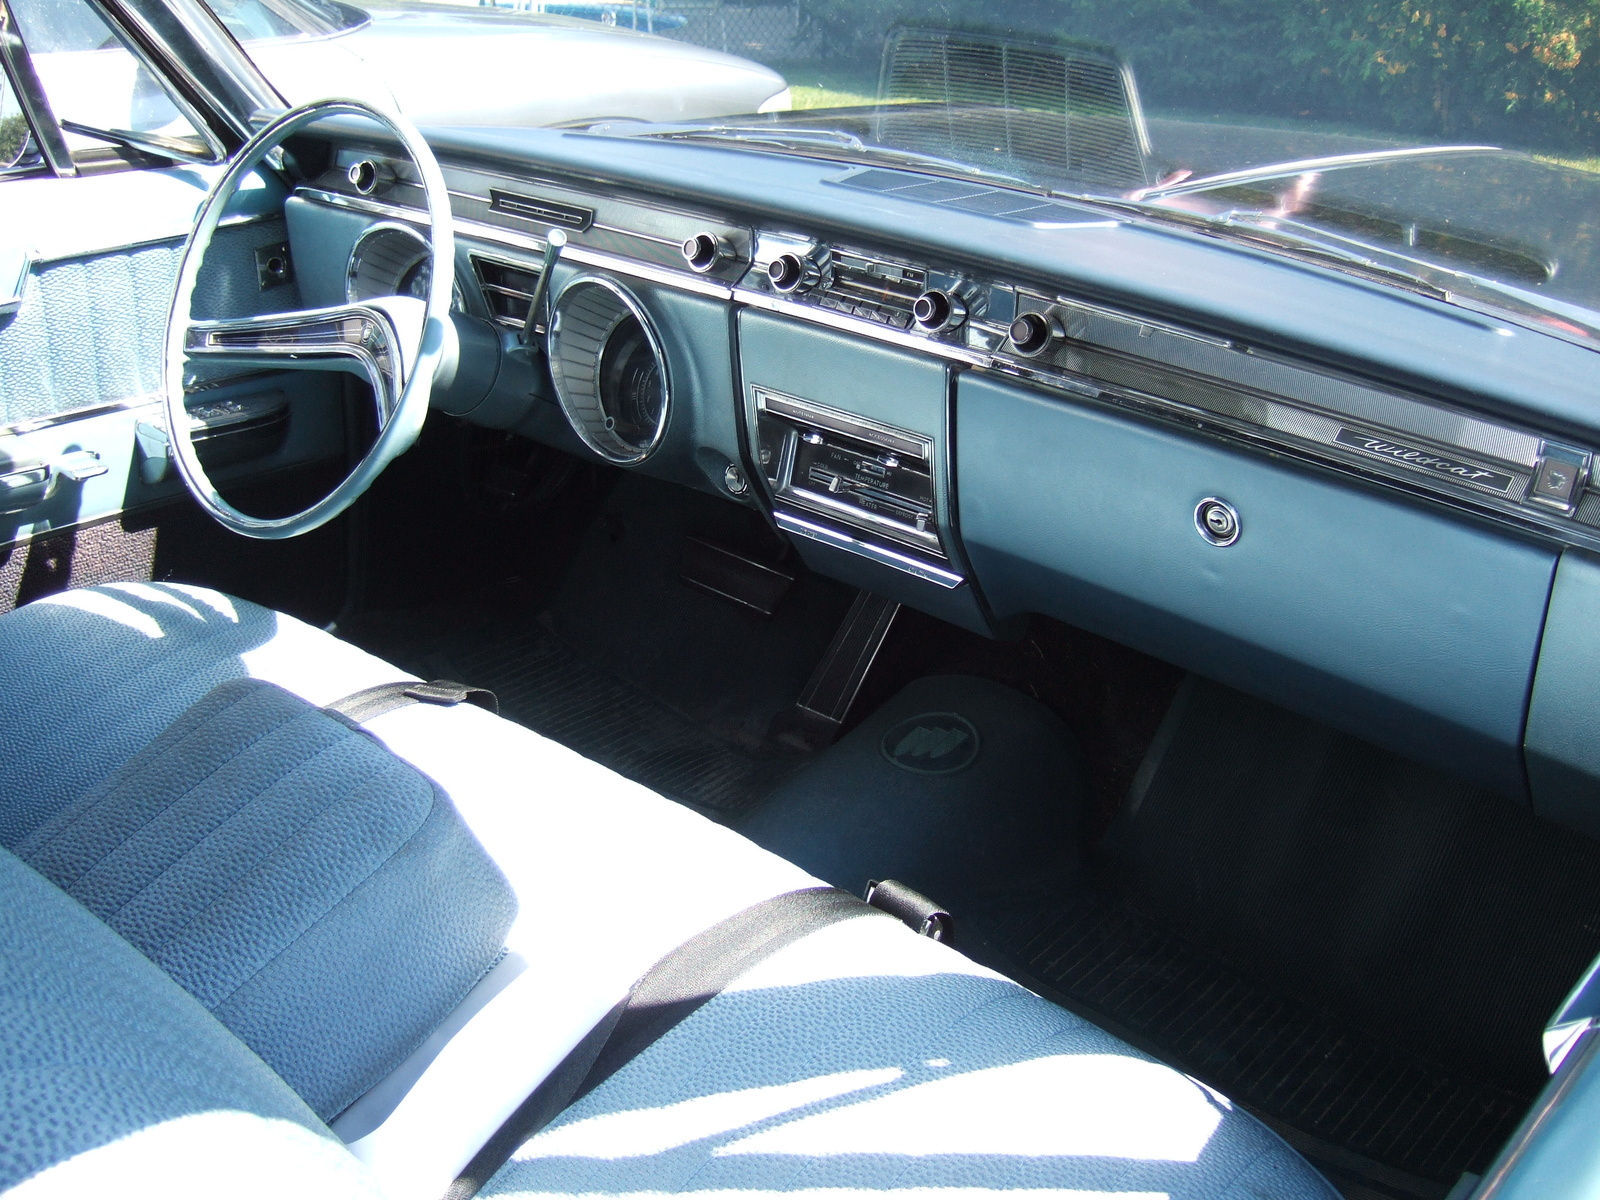 1968 buick wildcat wiring diagram wirdig diagram also 1976 buick riviera on 1976 buick electra engine diagram